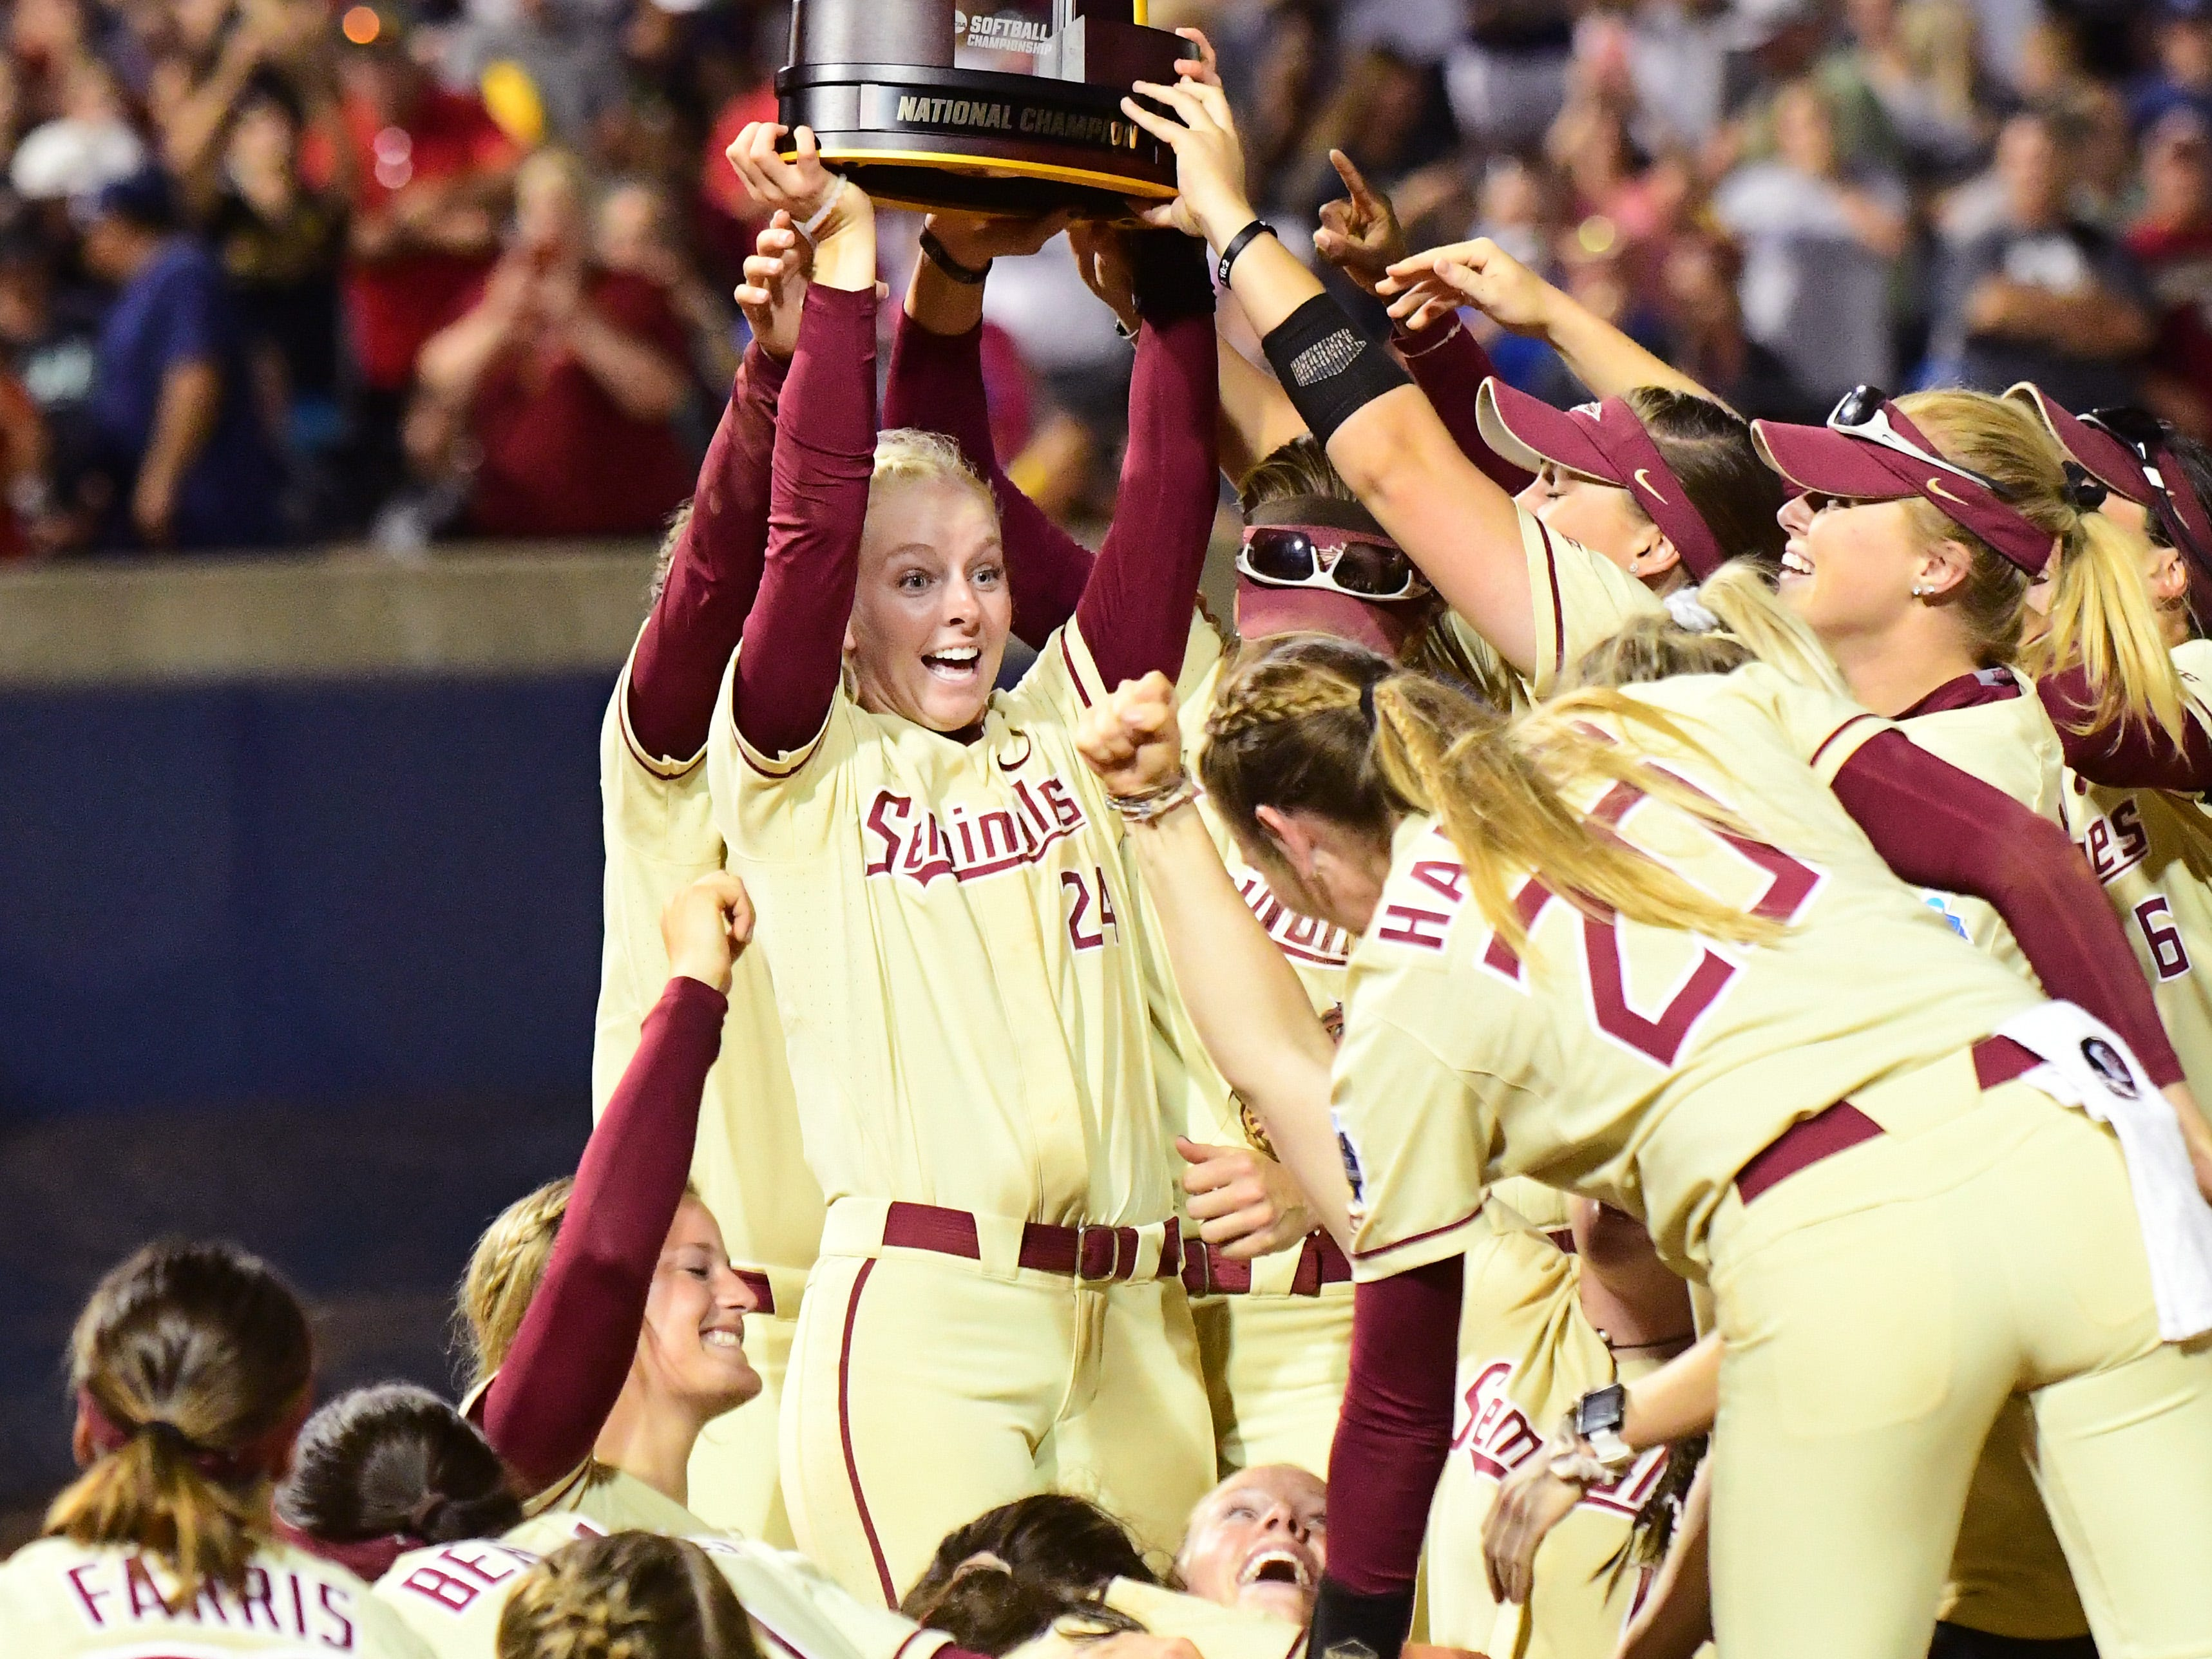 The Florida State Univeristy Softball Team celebrates their first NCAA National Championship title with a 8-3 victory over the Washington Huskies at the USA Softball Hall of Fame Stadium on Tuesday.